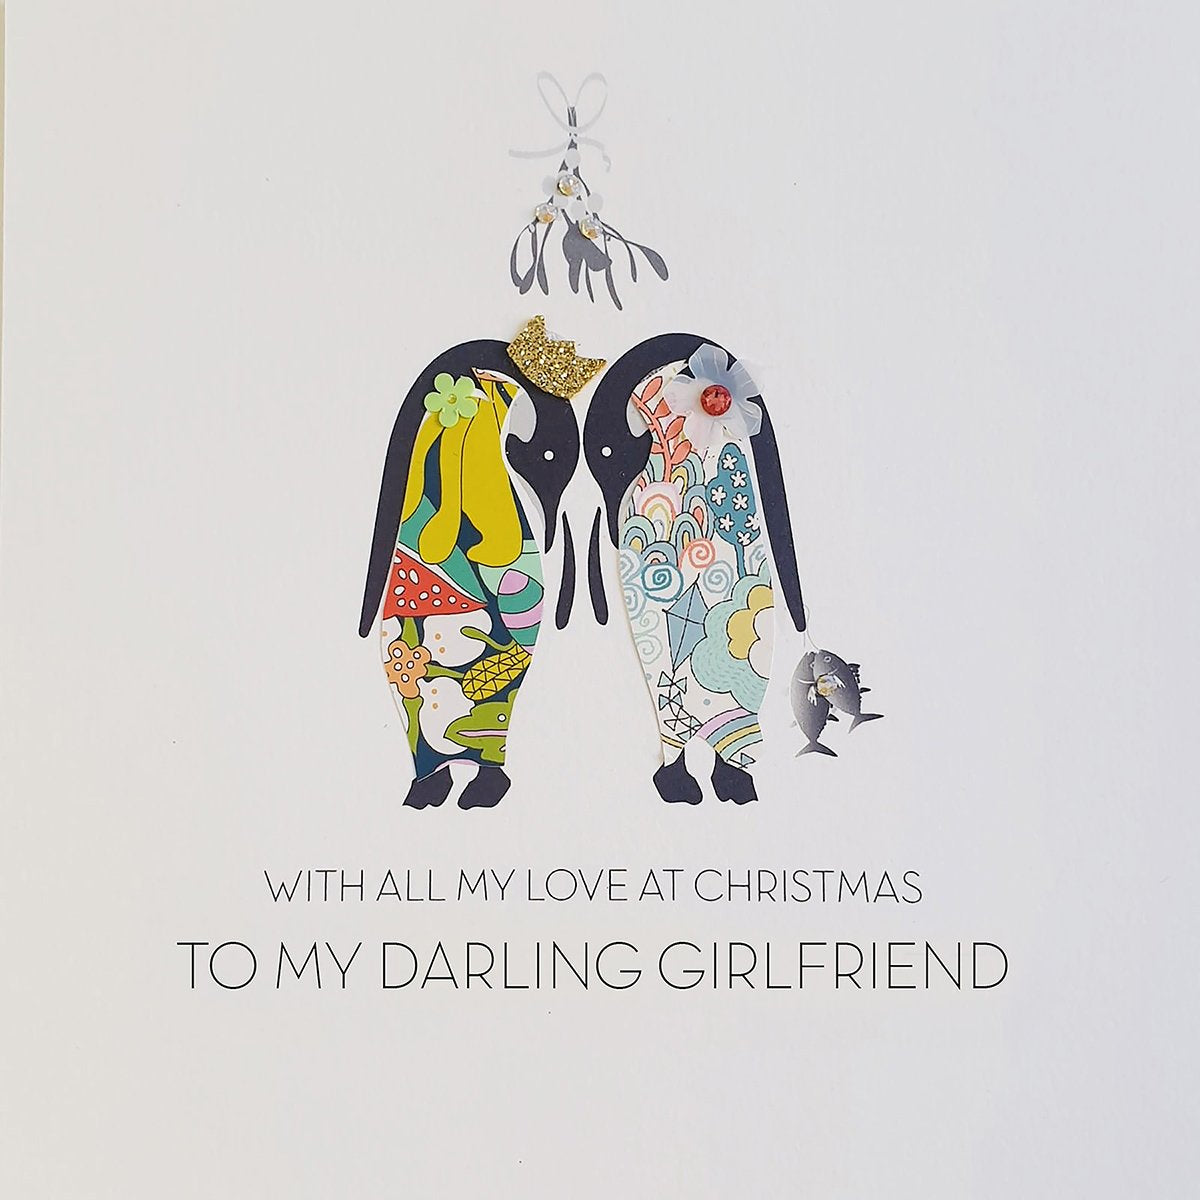 Five Dollar Shake - To My Darling Girlfriend